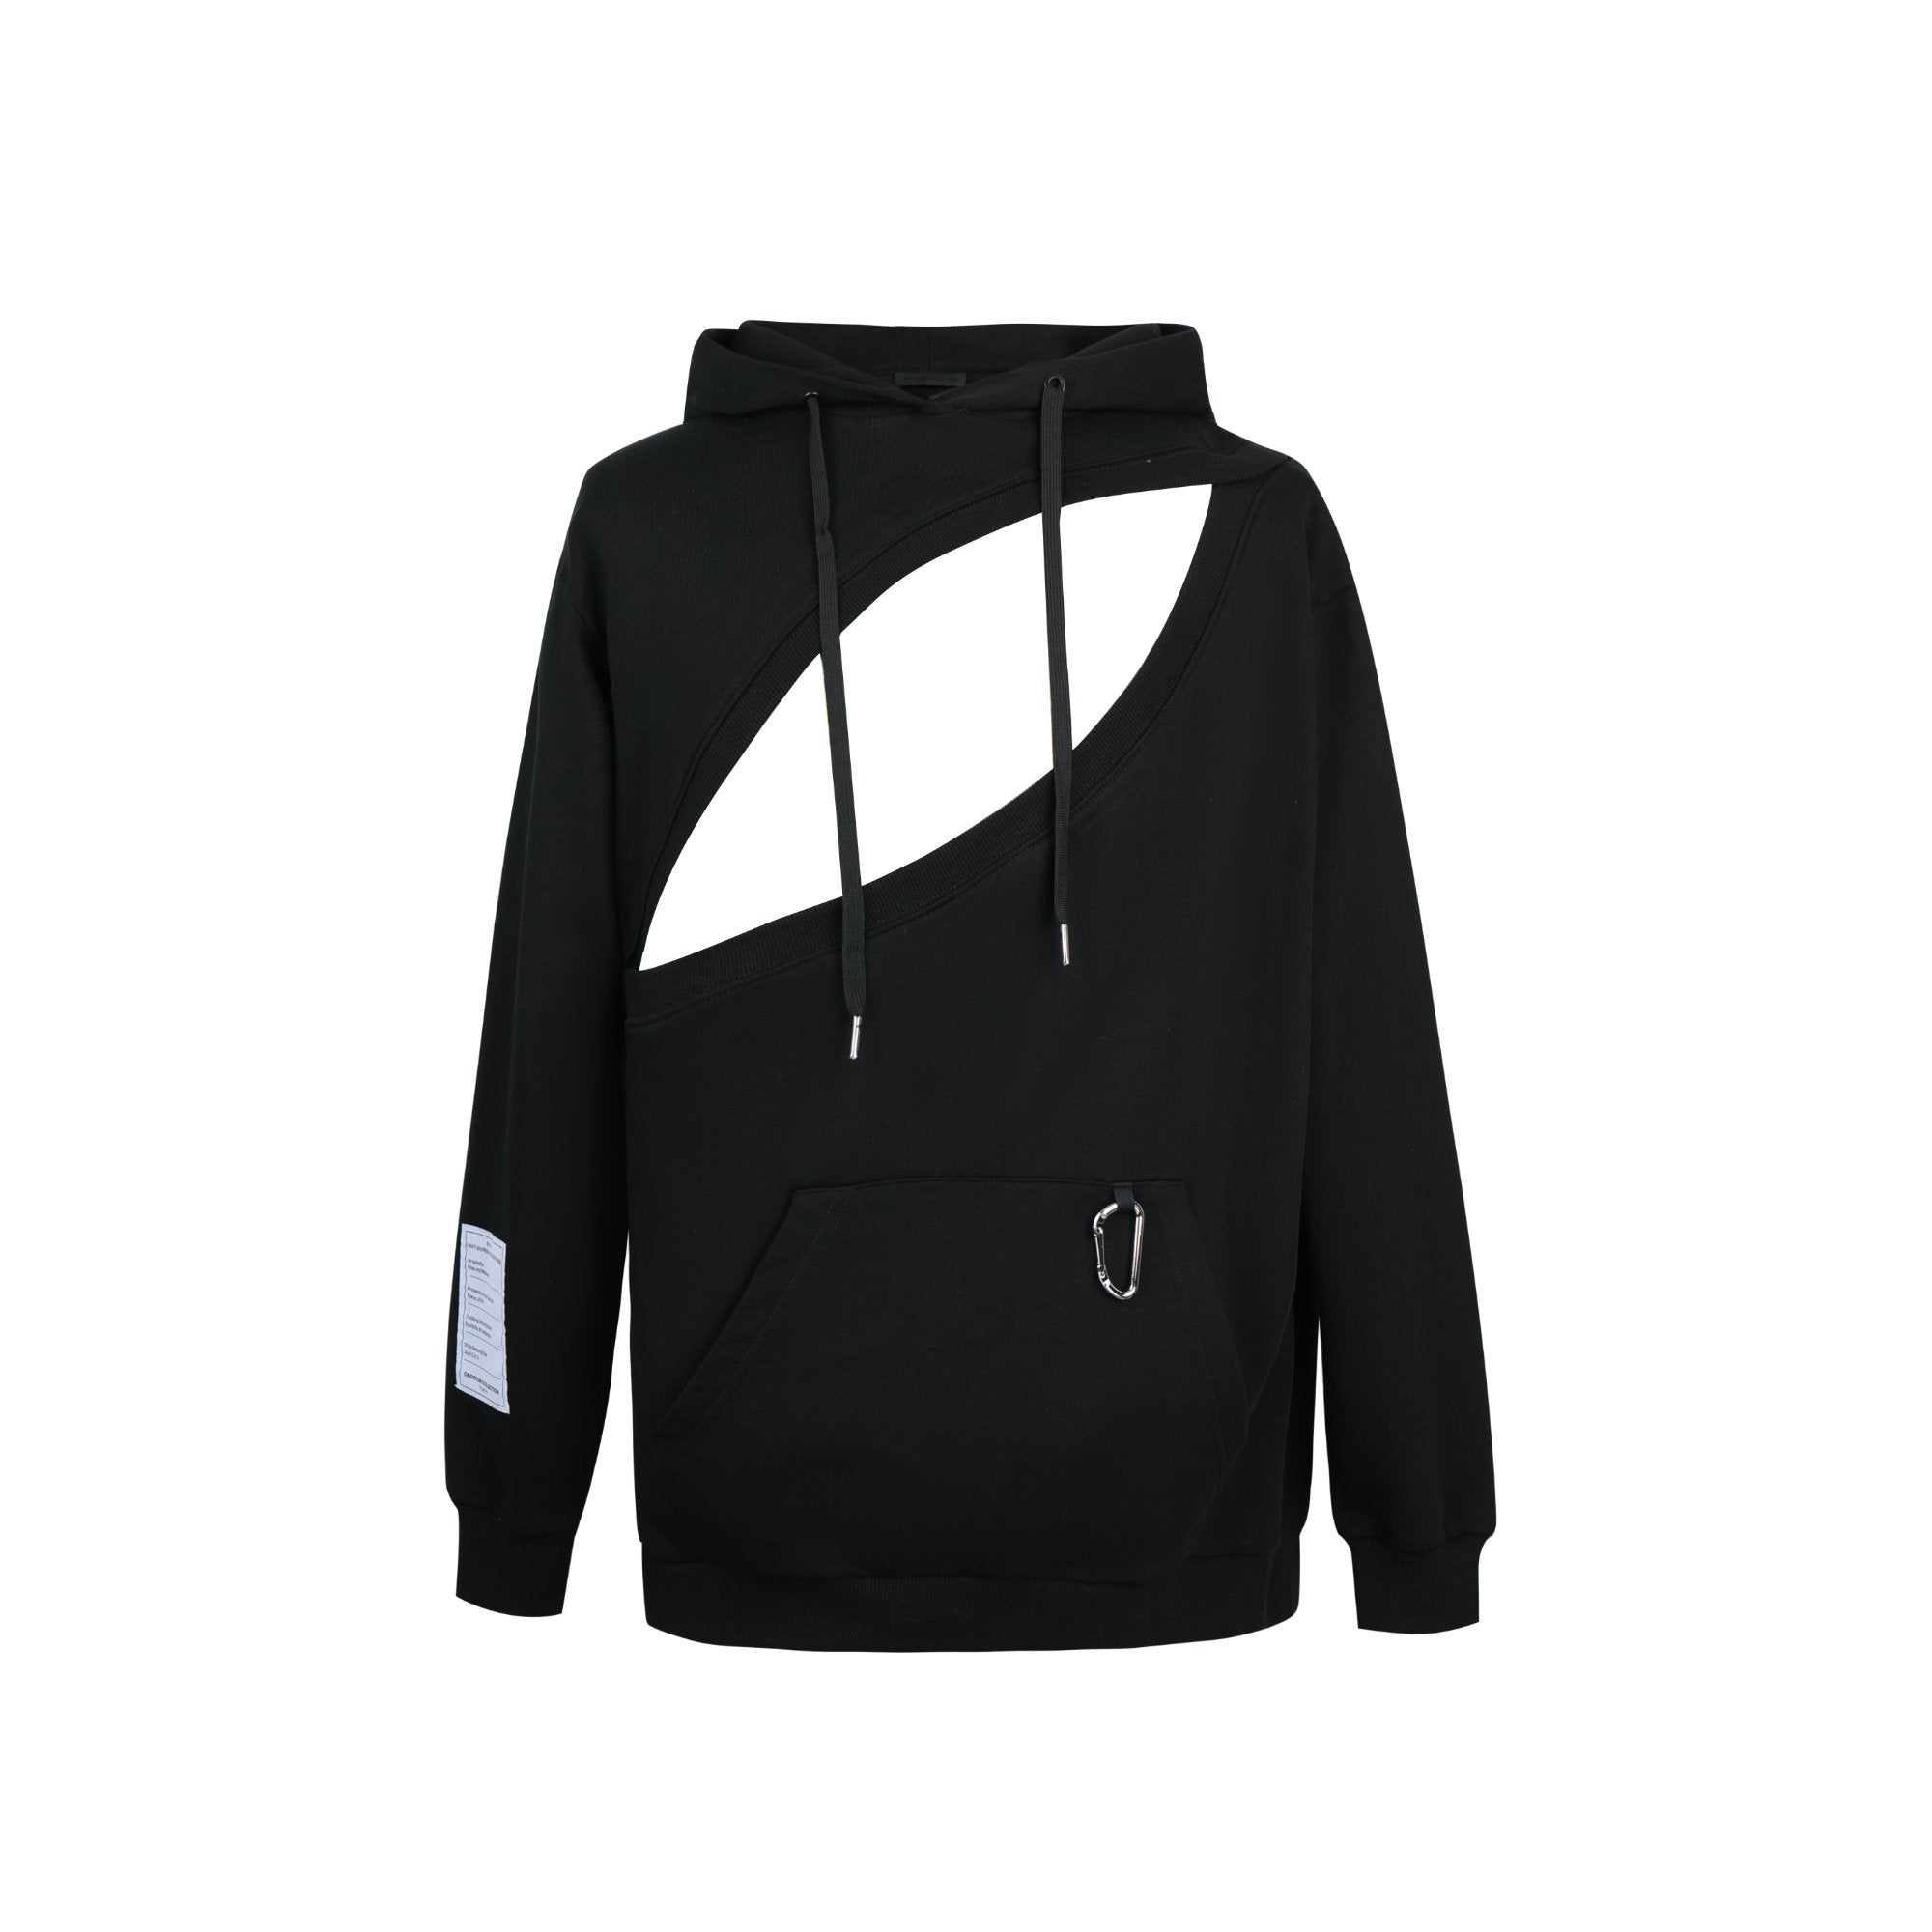 ONOFFON Black Cut-Out Hoodie | MADA IN CHINA